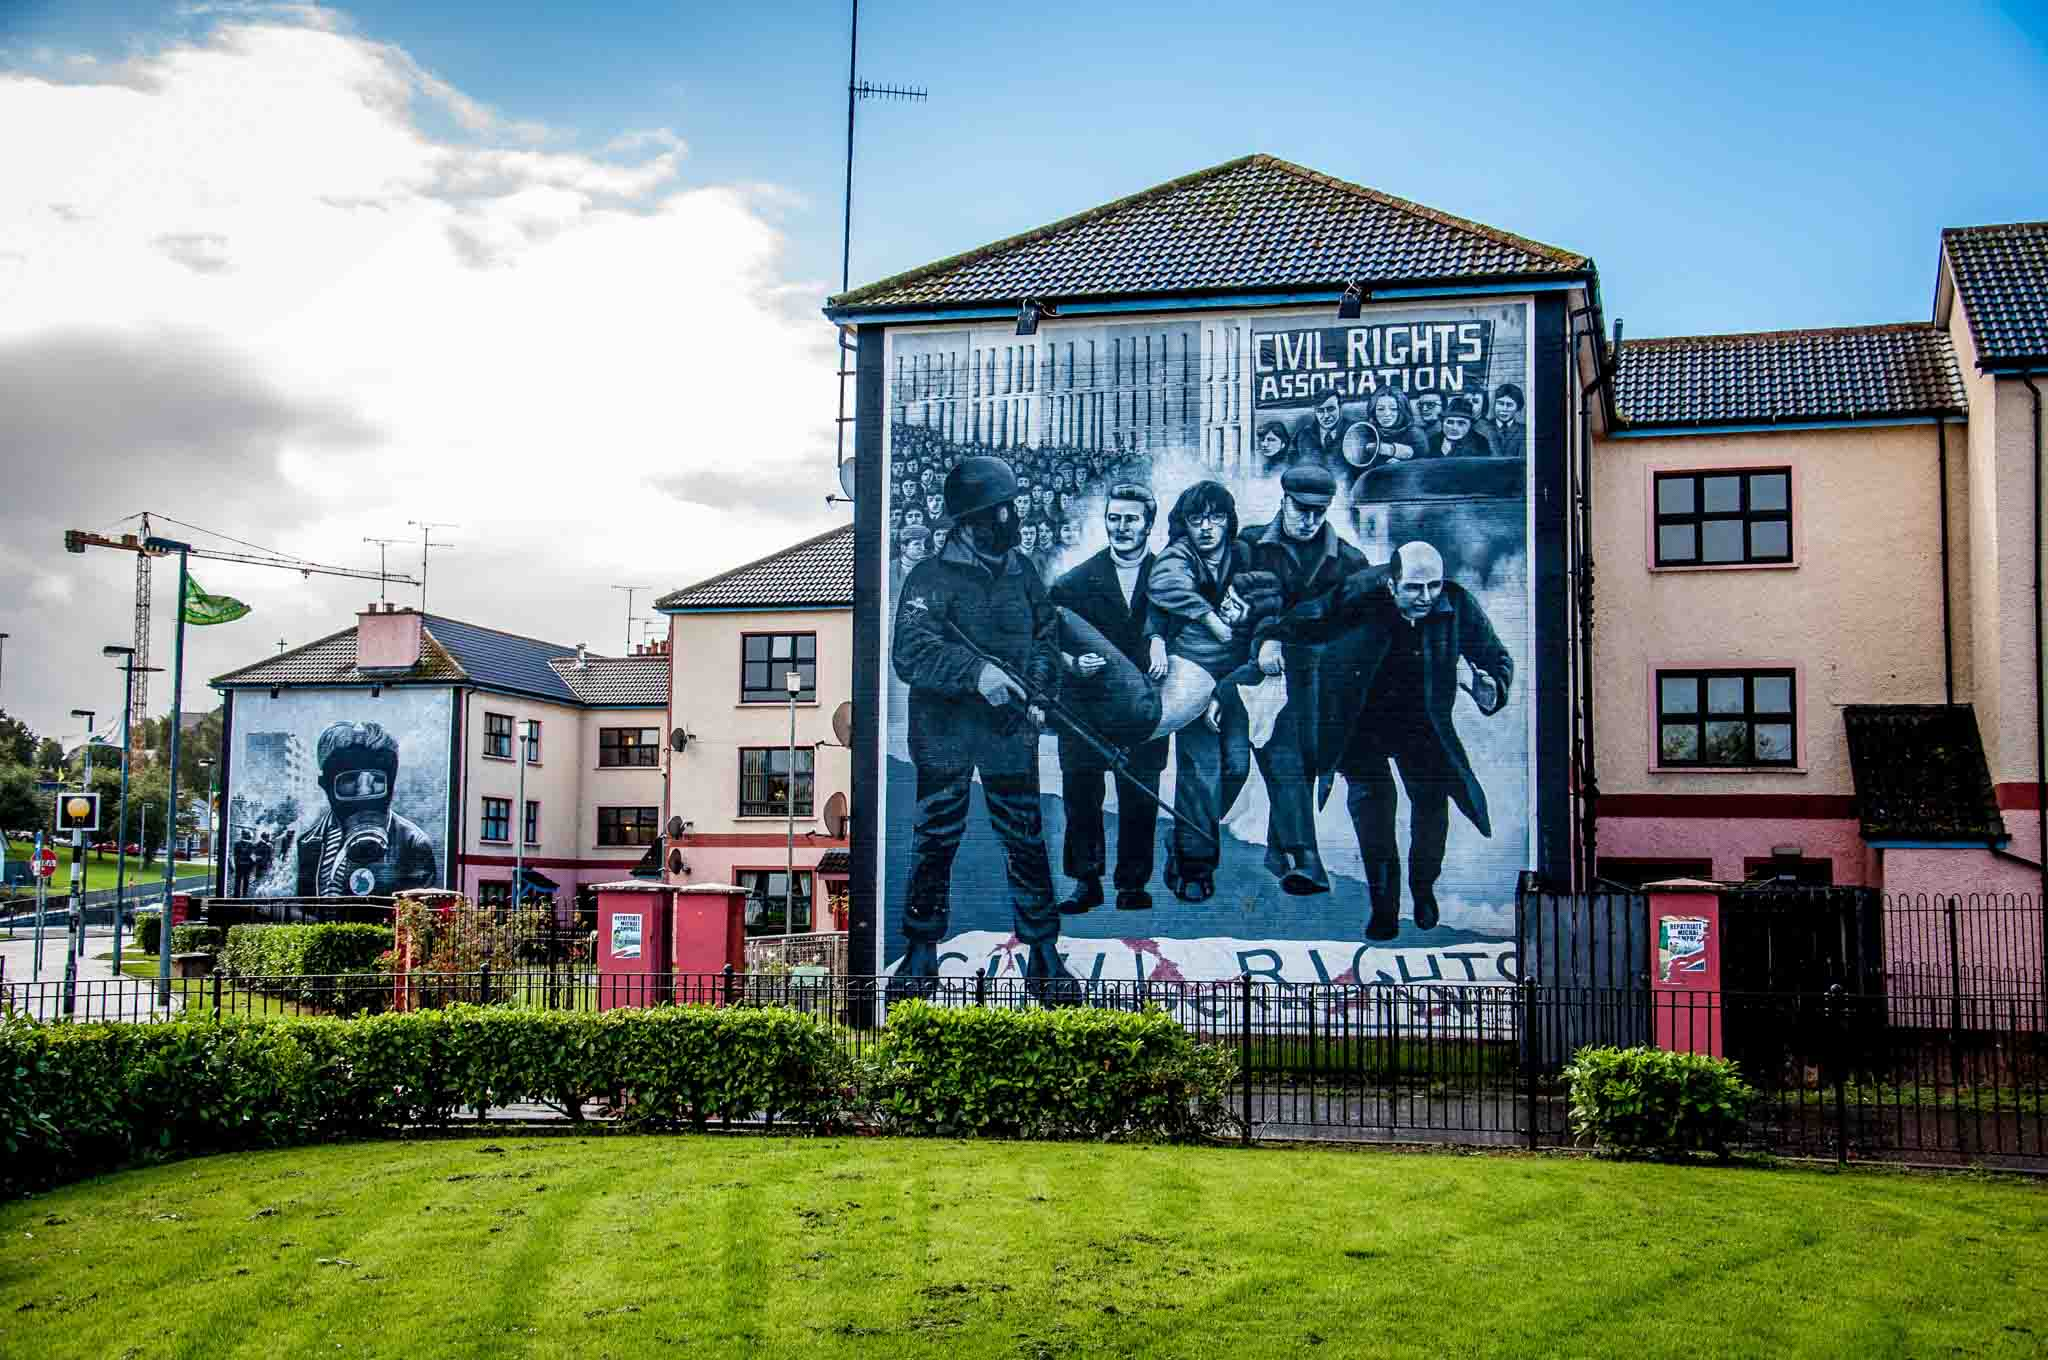 One of the Derry murals commemorating the events of Bloody Sunday